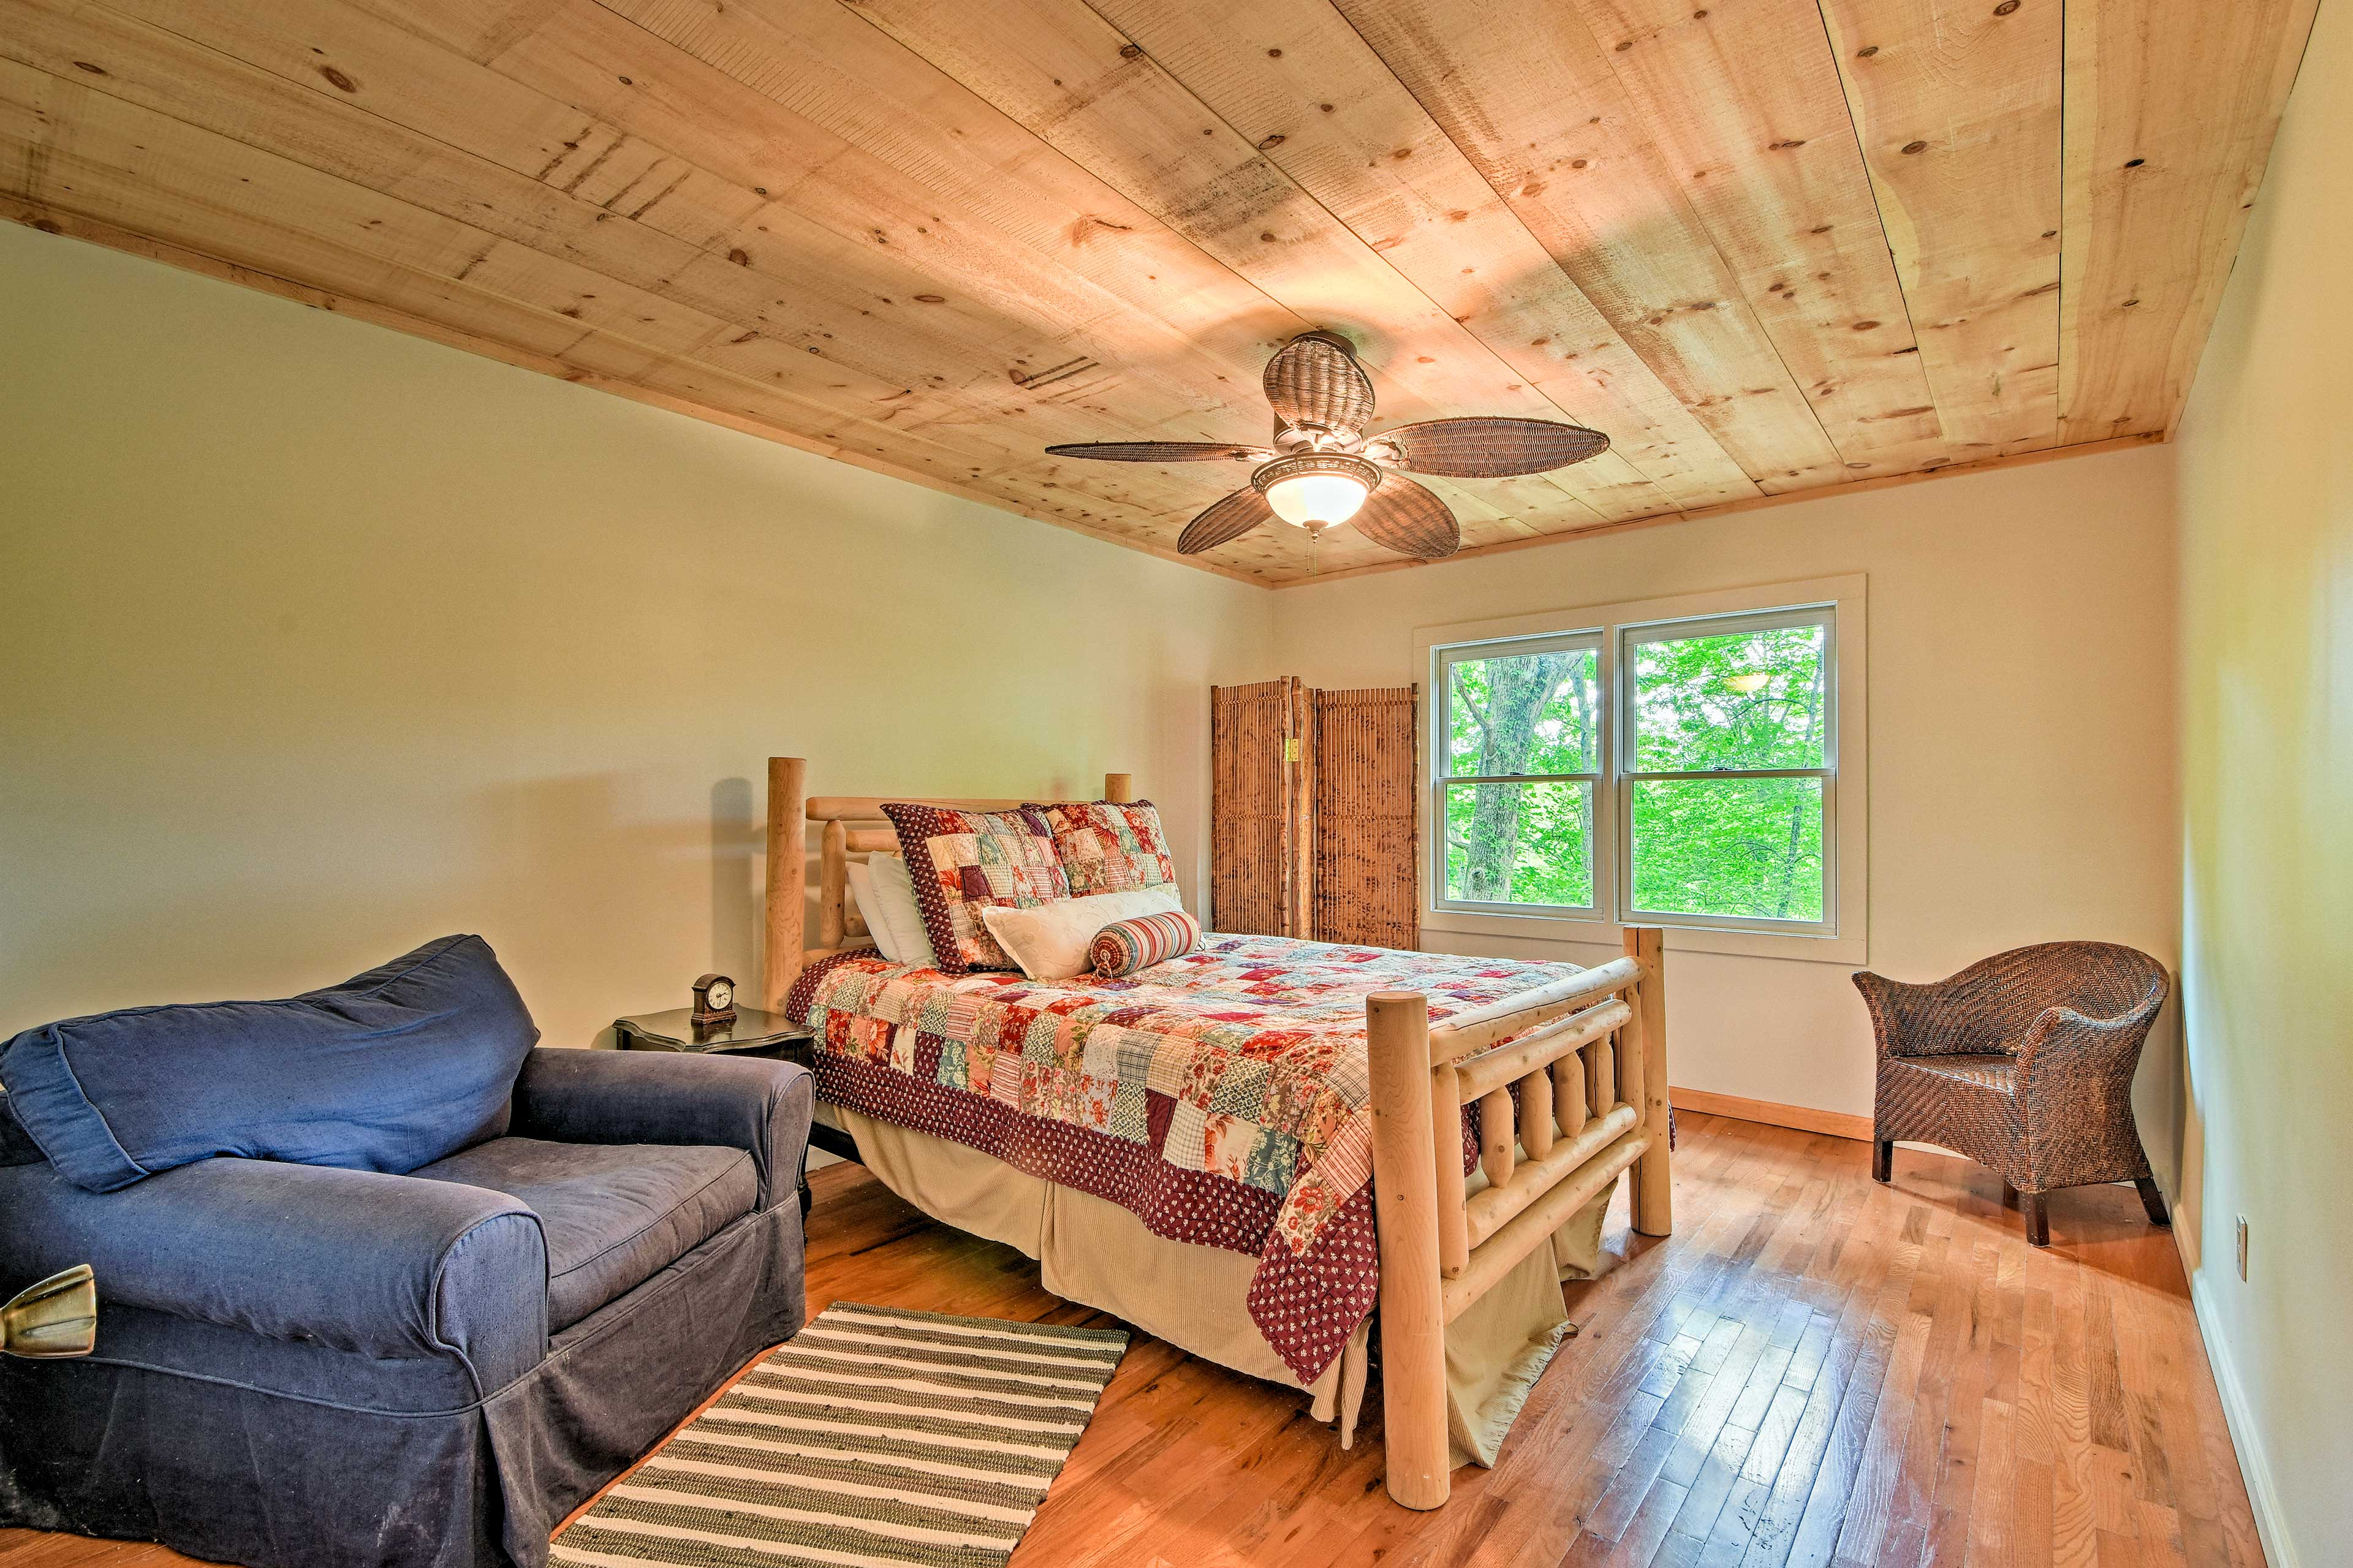 Get cozy with this bedroom's queen bed and armchair!